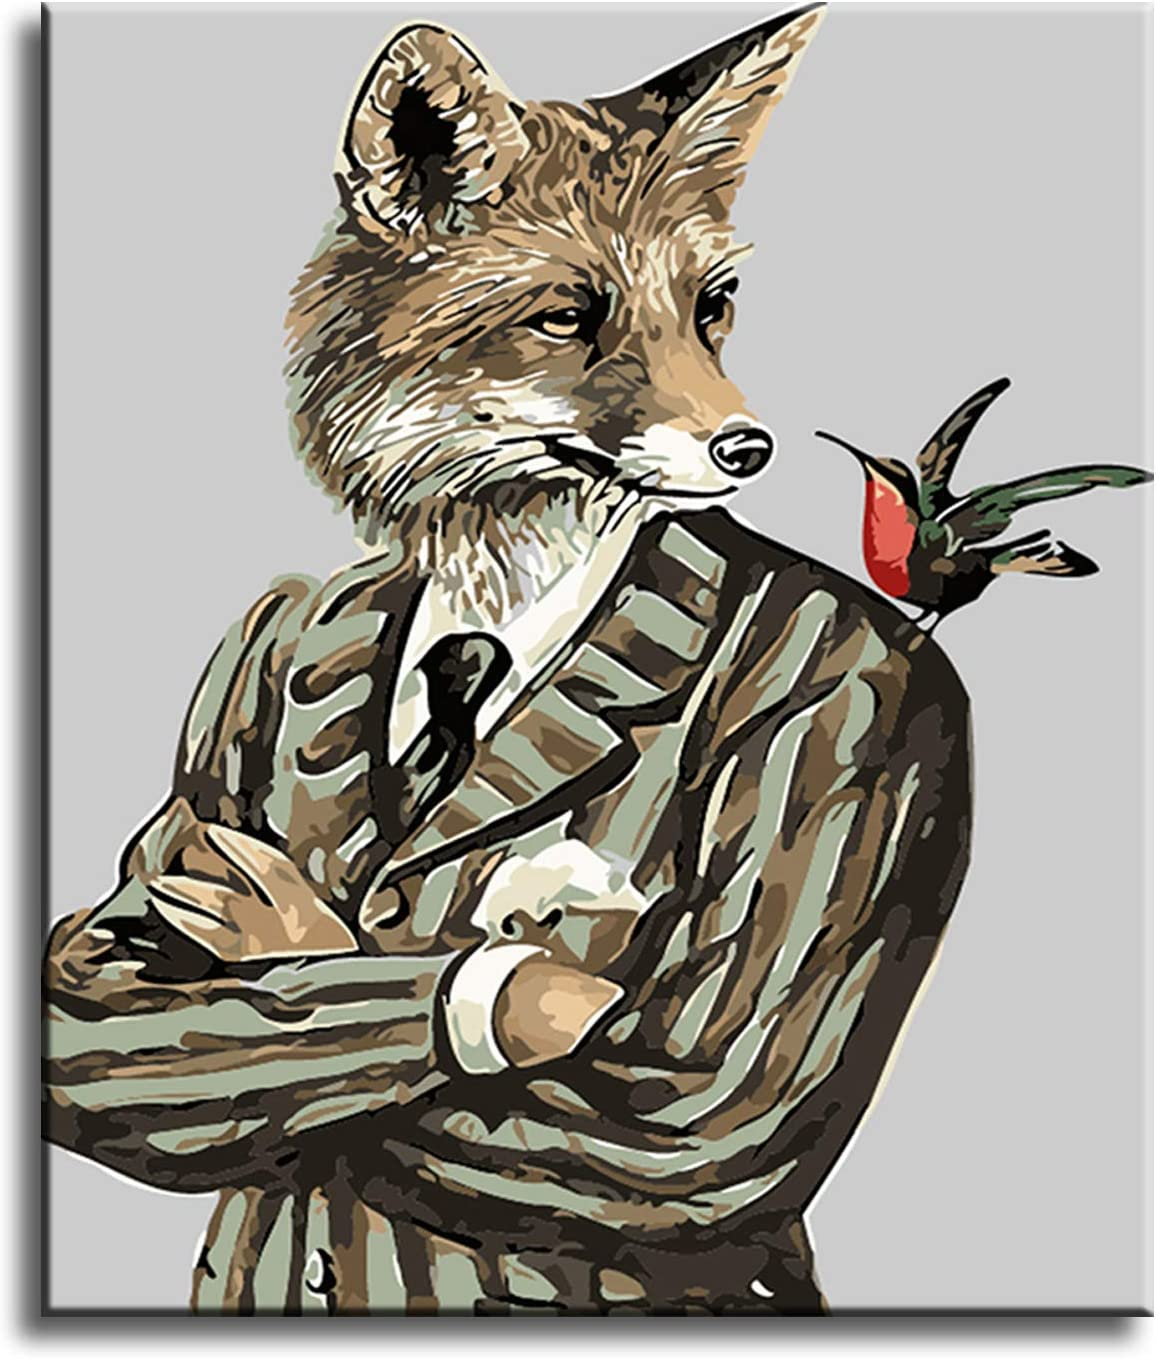 Acrylic Painting Fox 16X20 Inch Frameless Adults Paint by Number Kits Shukqueen Diy Oil Painting